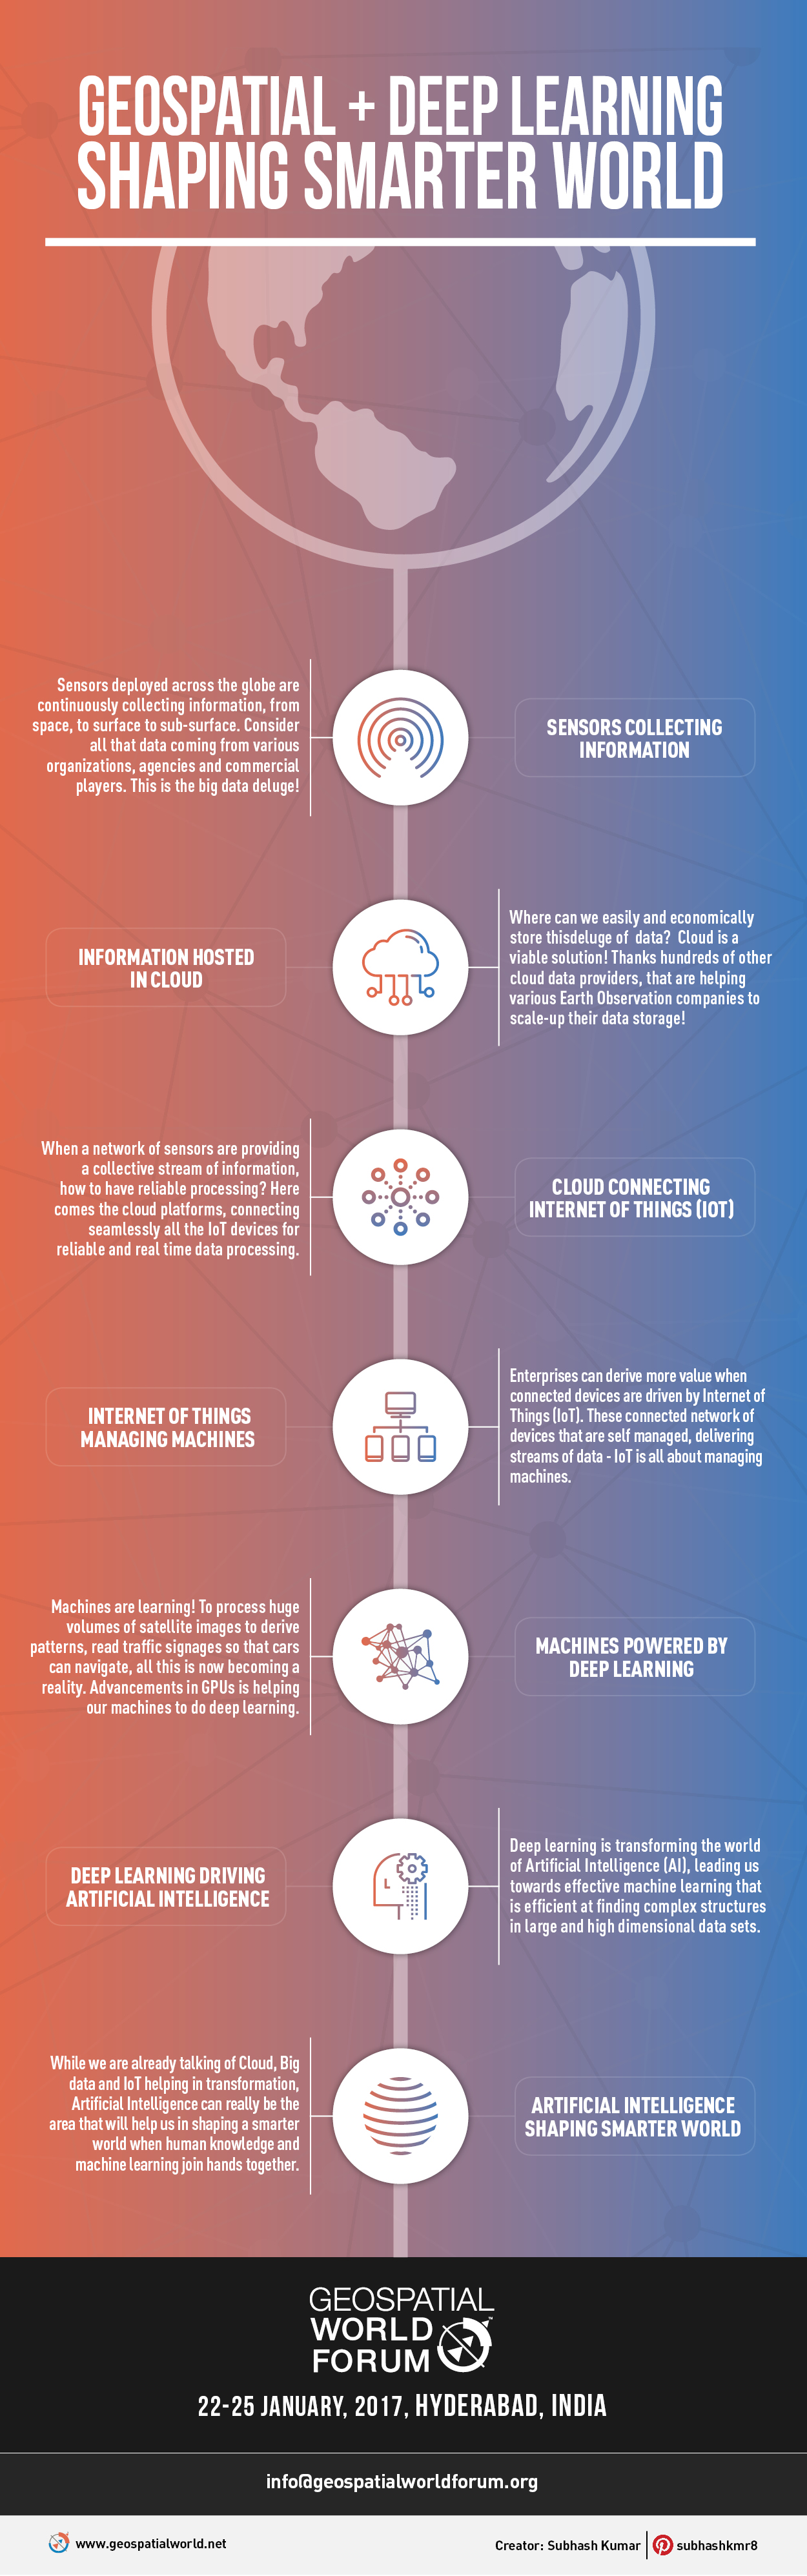 geospatial deep learning artificial intelligence infographic by geospatial media